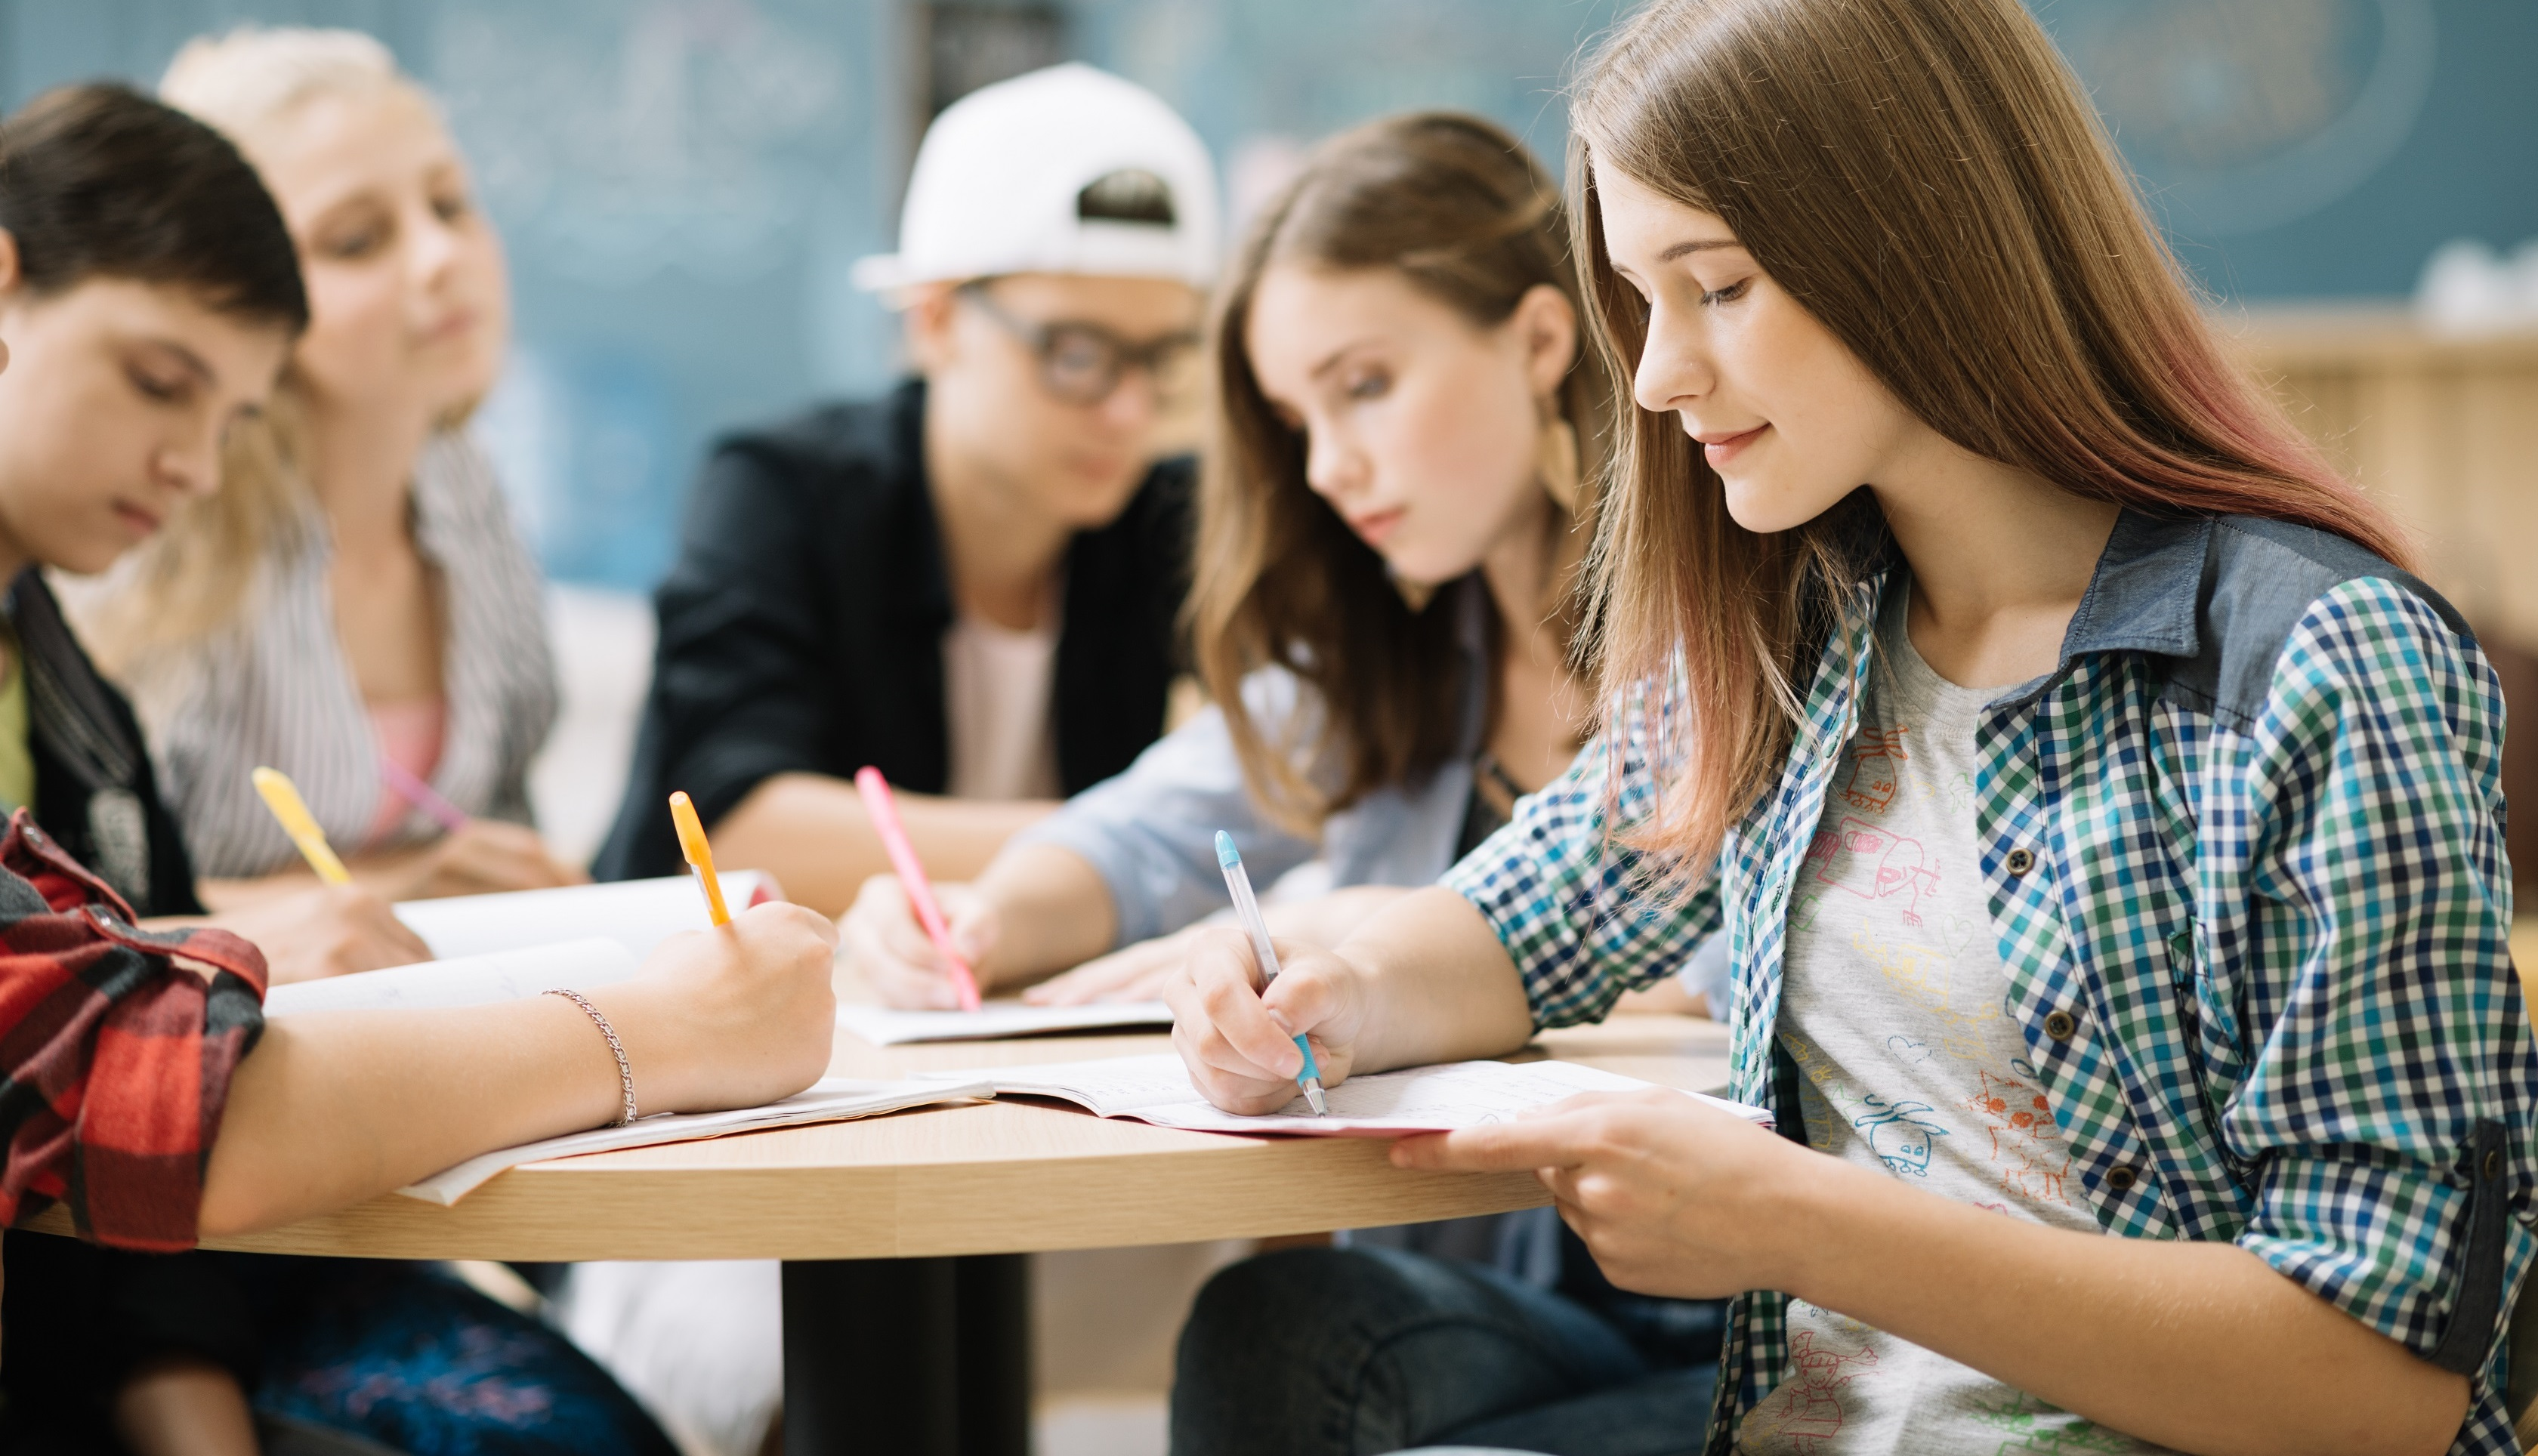 Klimb Education is based in Hong Kong with an aim to helping our students to embark on a journey to experience the college life at prestigious universities in the UK and USA.